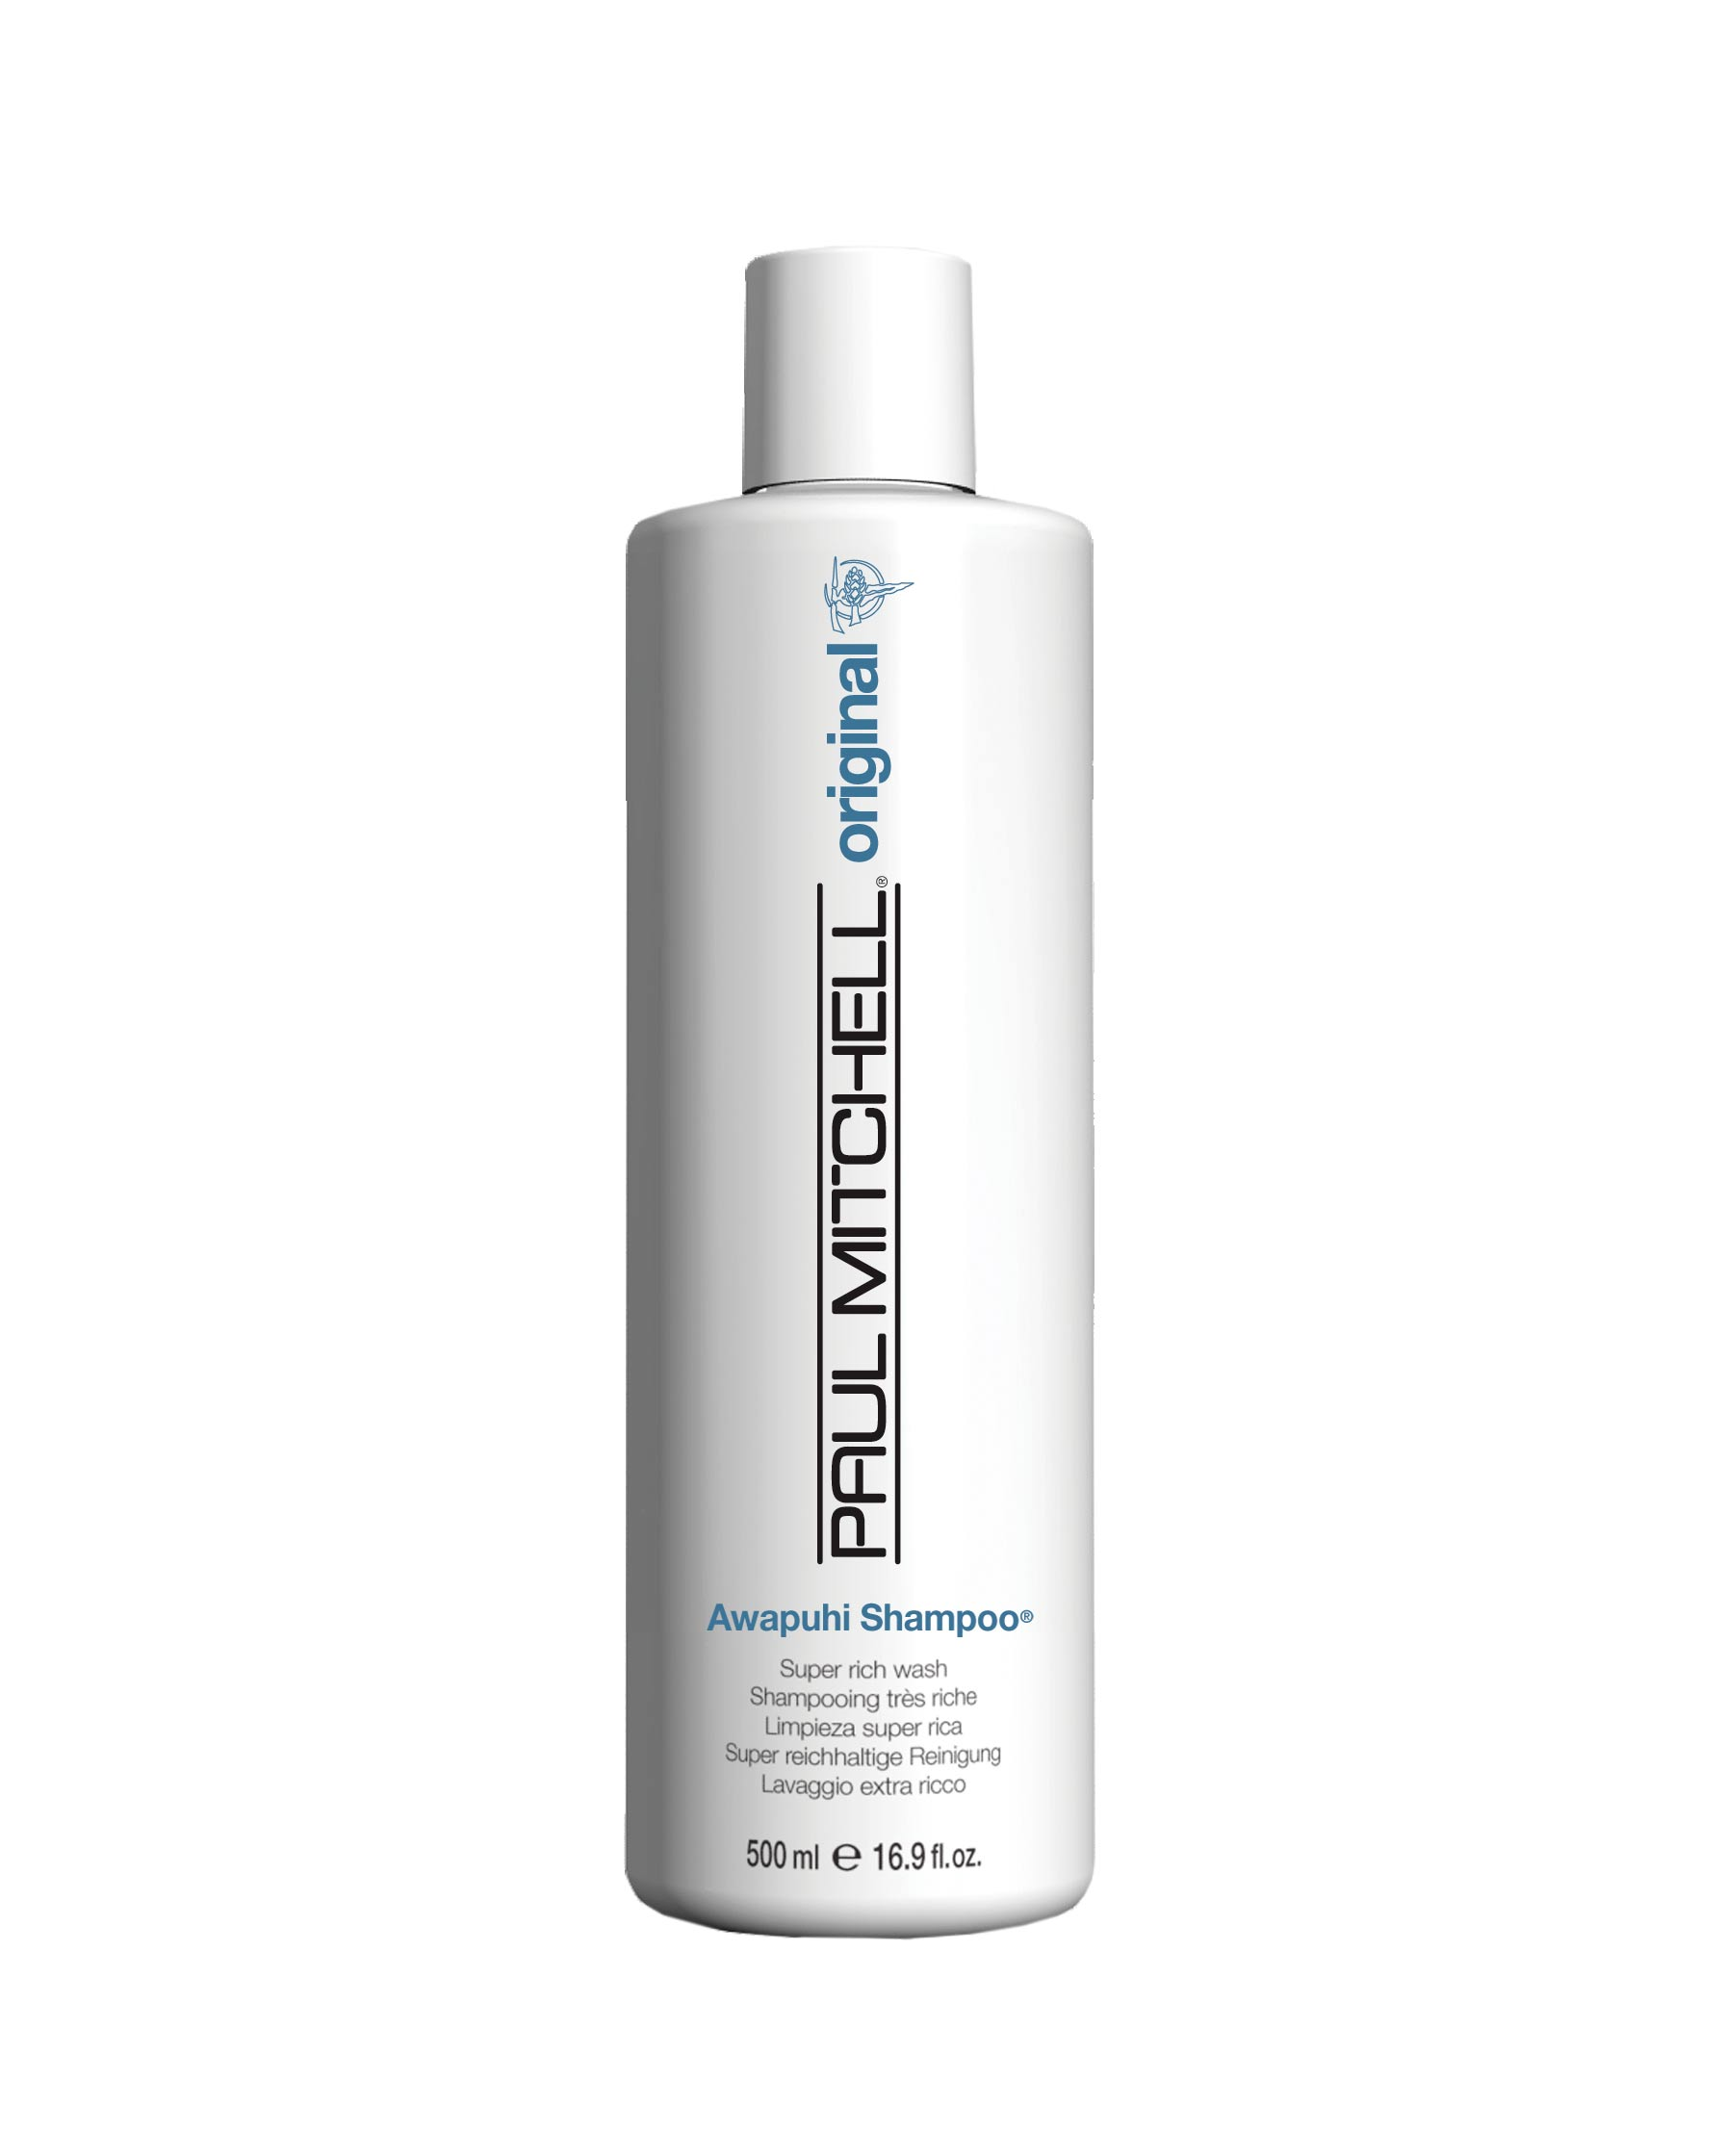 big-day-beauty-awards-paul-mitchell-the-conditioner-0216.jpg